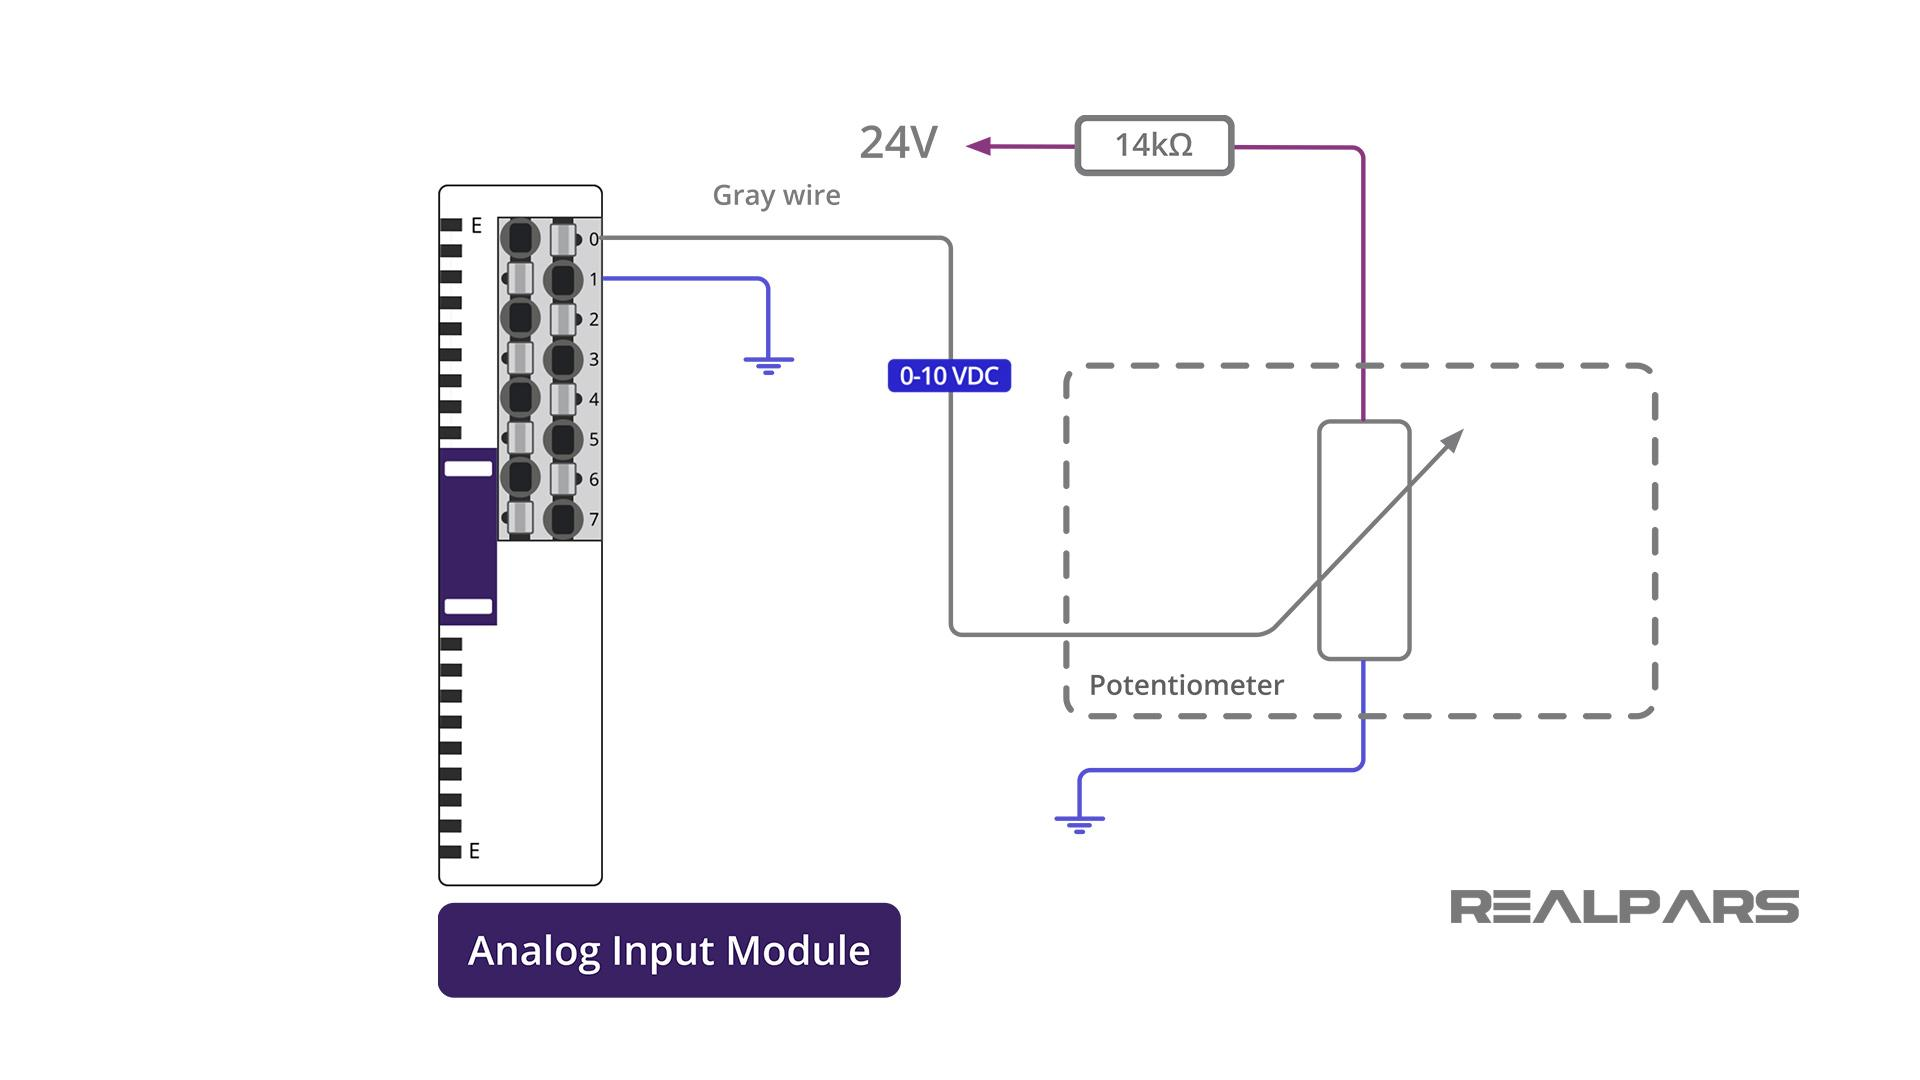 Slider Connected to Analog - Input Module